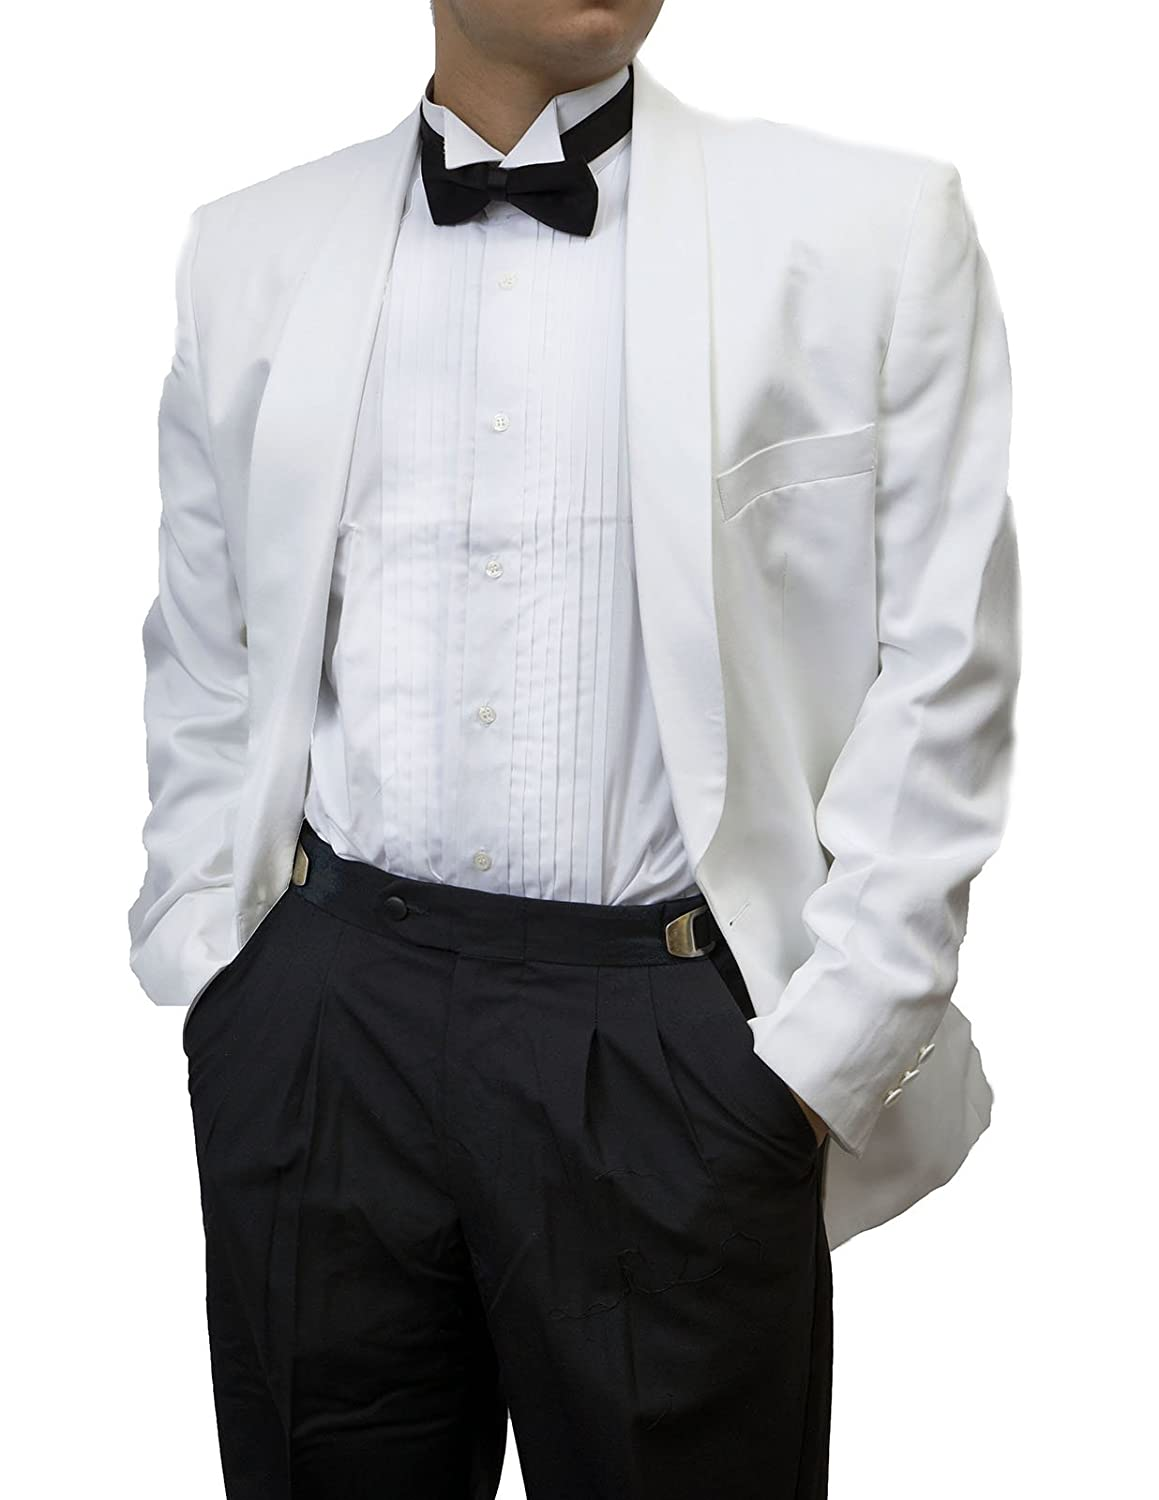 Broadway Tuxmakers Mens 100% Wool Adjustable Black Tuxedo Pants With Satin Stripe wool tuxedo pants